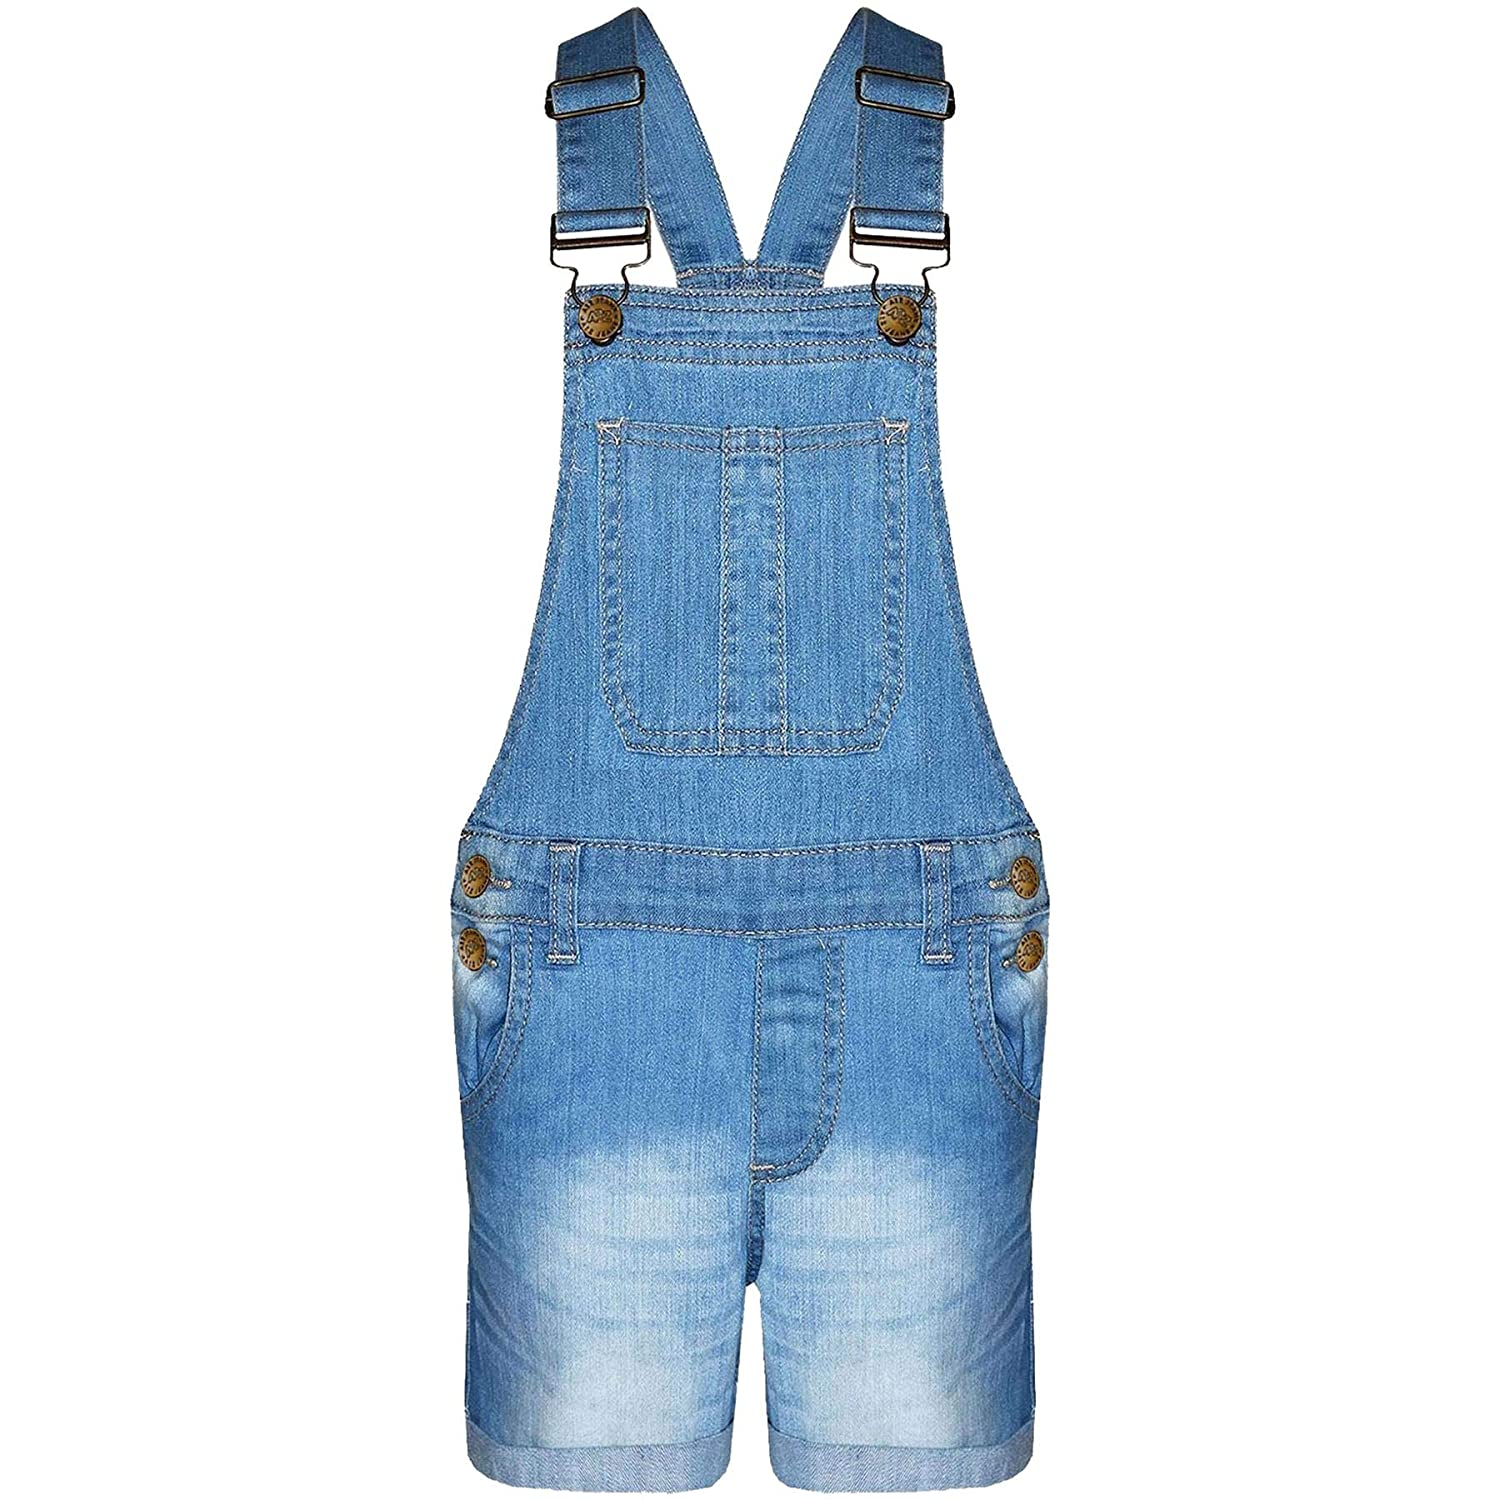 A2Z 4 Kids® Kids Girls Dungaree Shorts Denim Stretch Jeans Jumpsuit Playsuit All in One New Age 5 6 7 8 9 10 11 12 13 Years